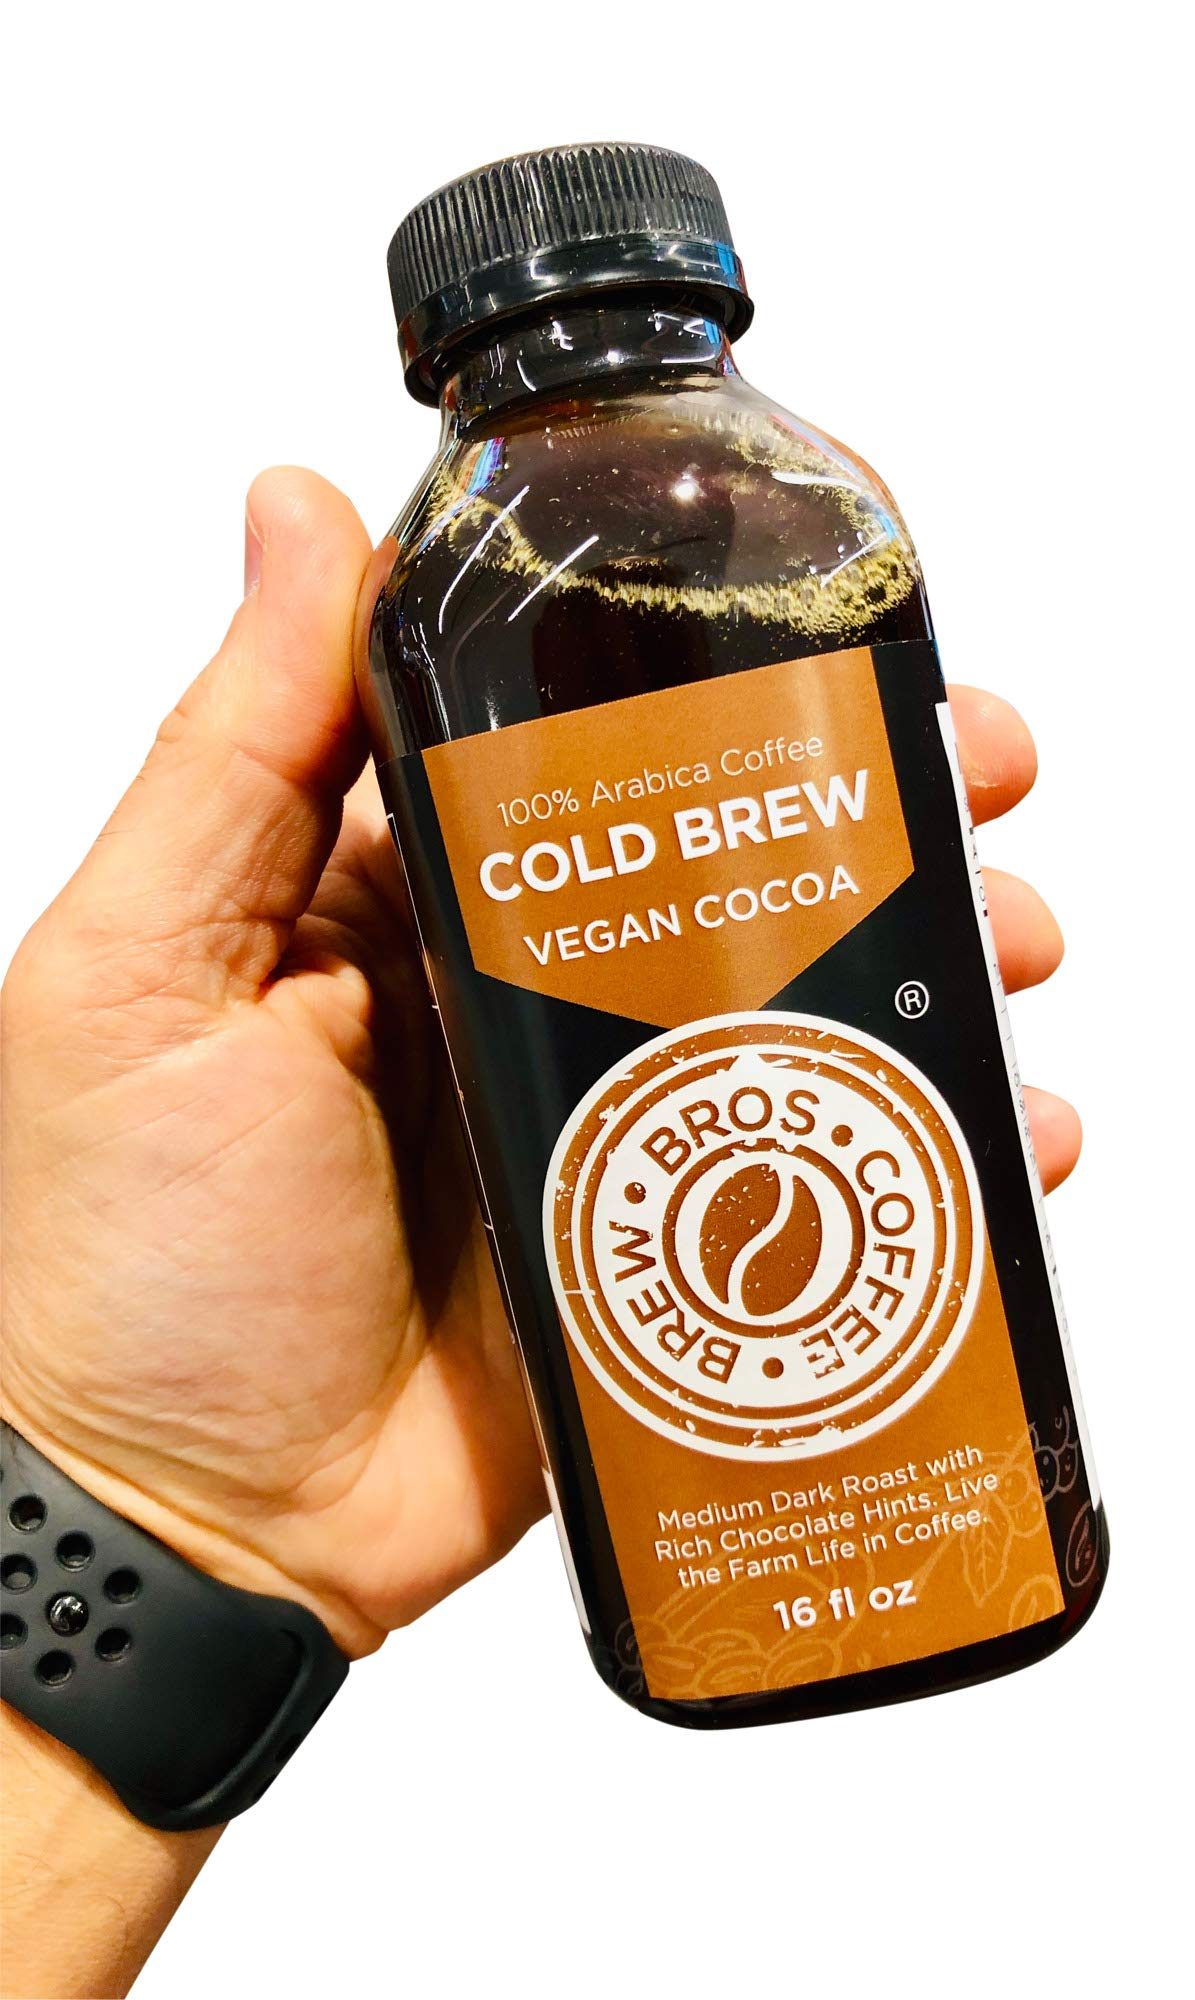 Artisan Small Batch Roasted 16 hour Brew Vegan Chocolate COLD Brew Bros - 8 pack (16oz) Medium Dark Roast by Gelato Brothers